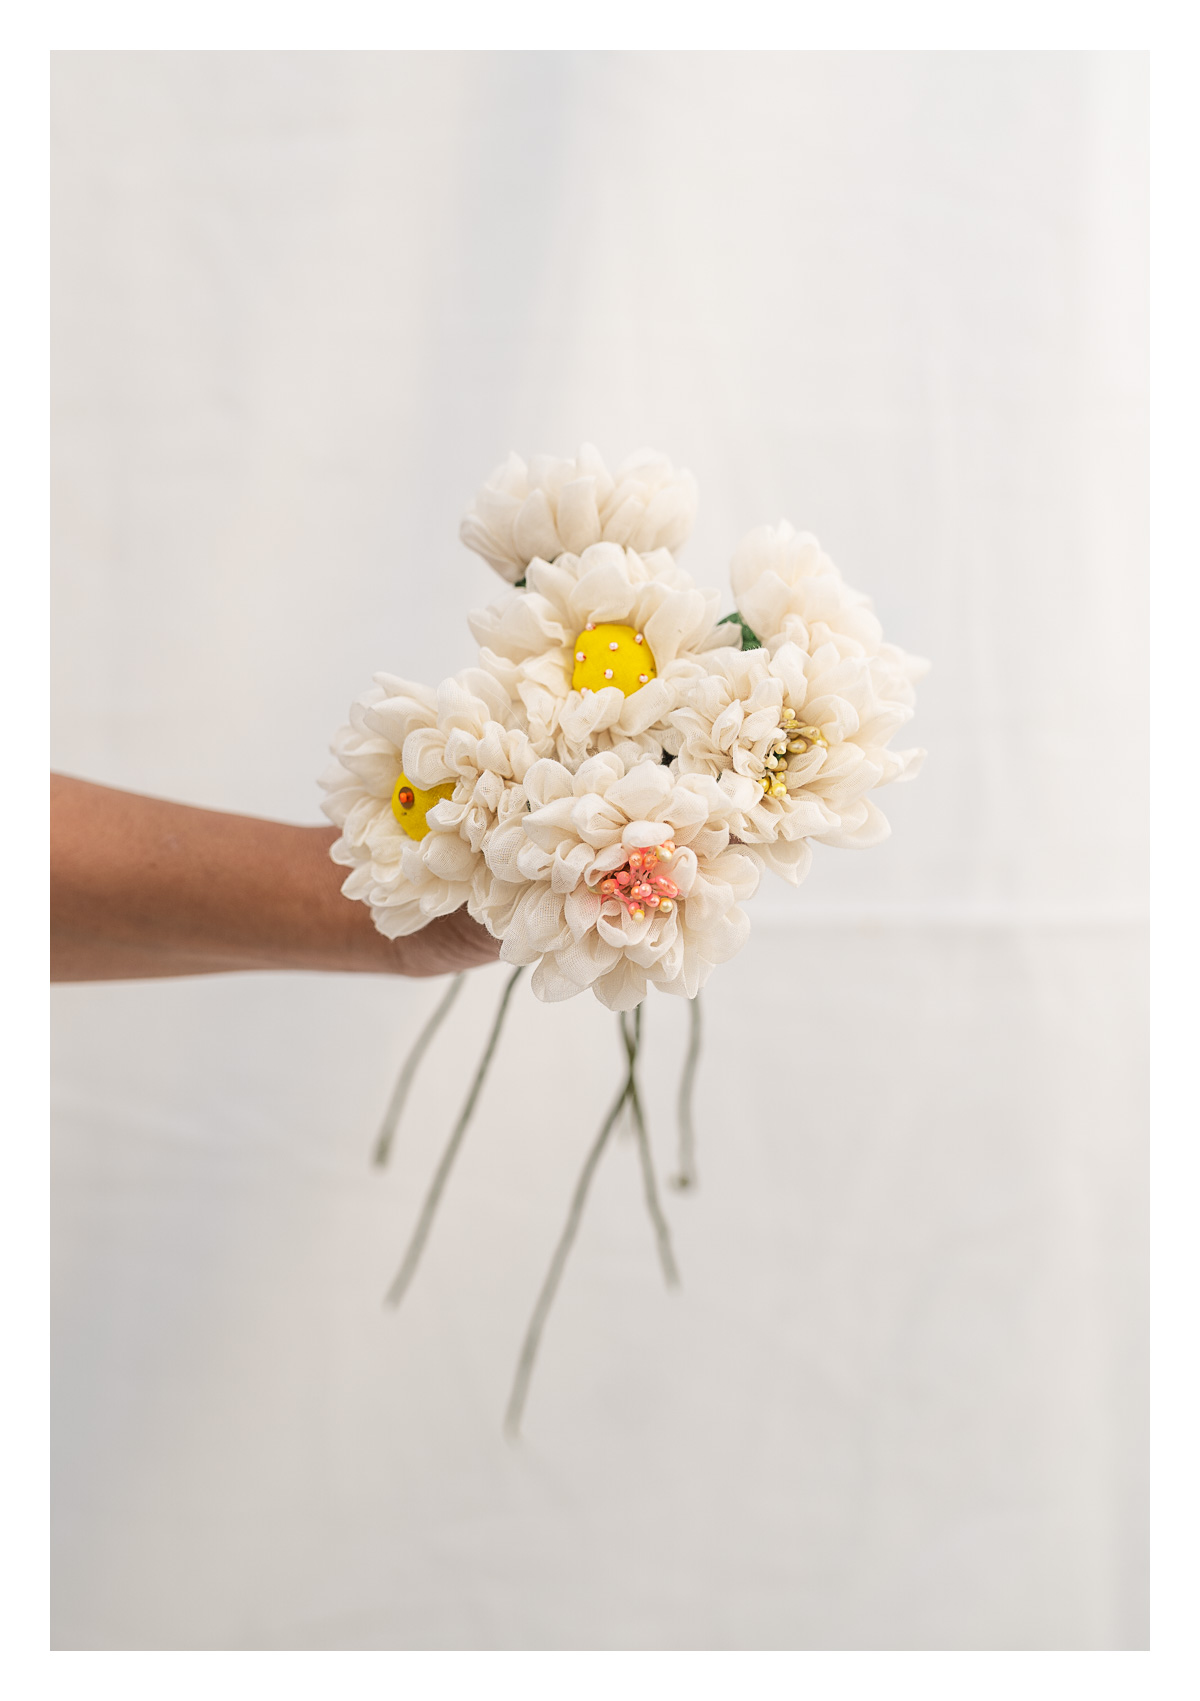 White Handmade Textile Flowers Bunch